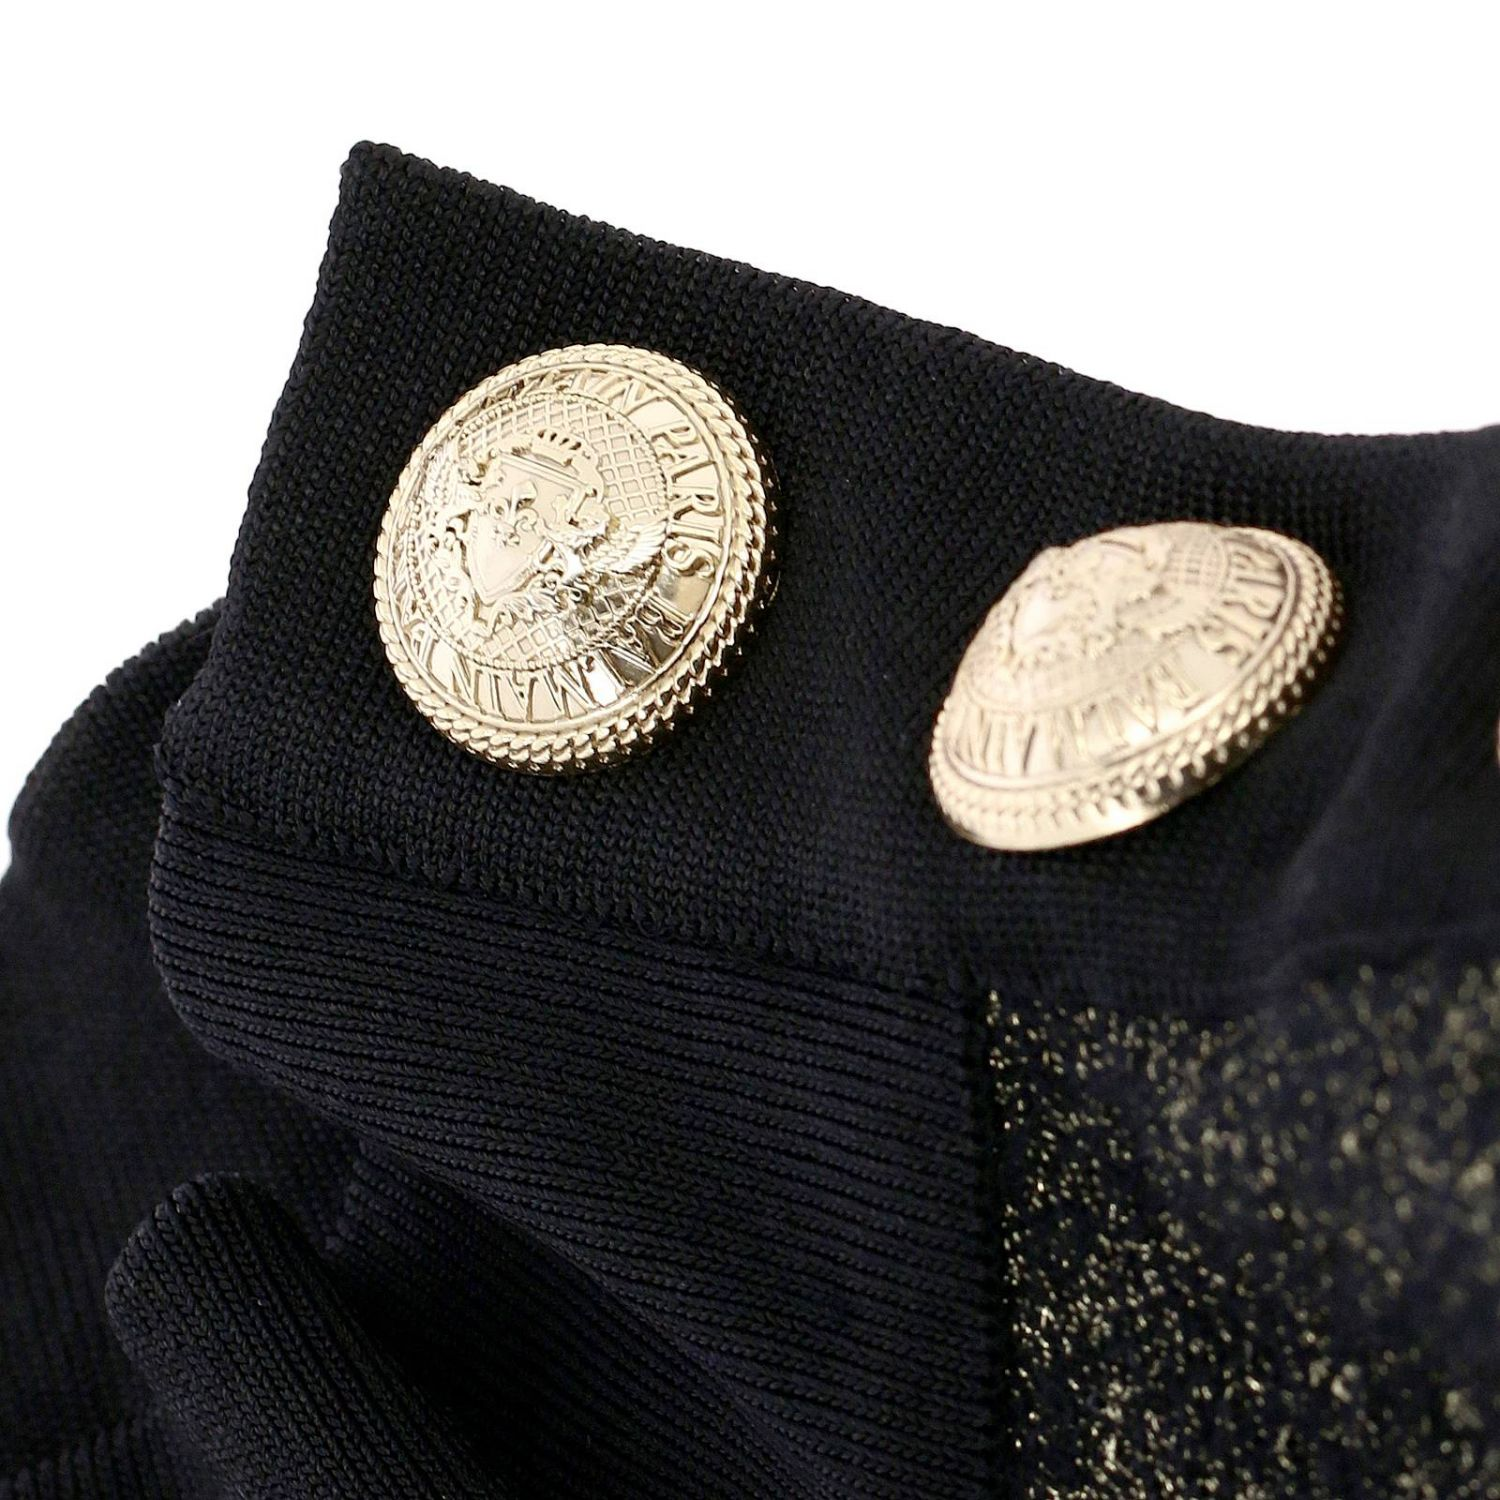 Jumper Balmain: Balmain turtleneck sweater with lurex bands and jewel buttons black 5